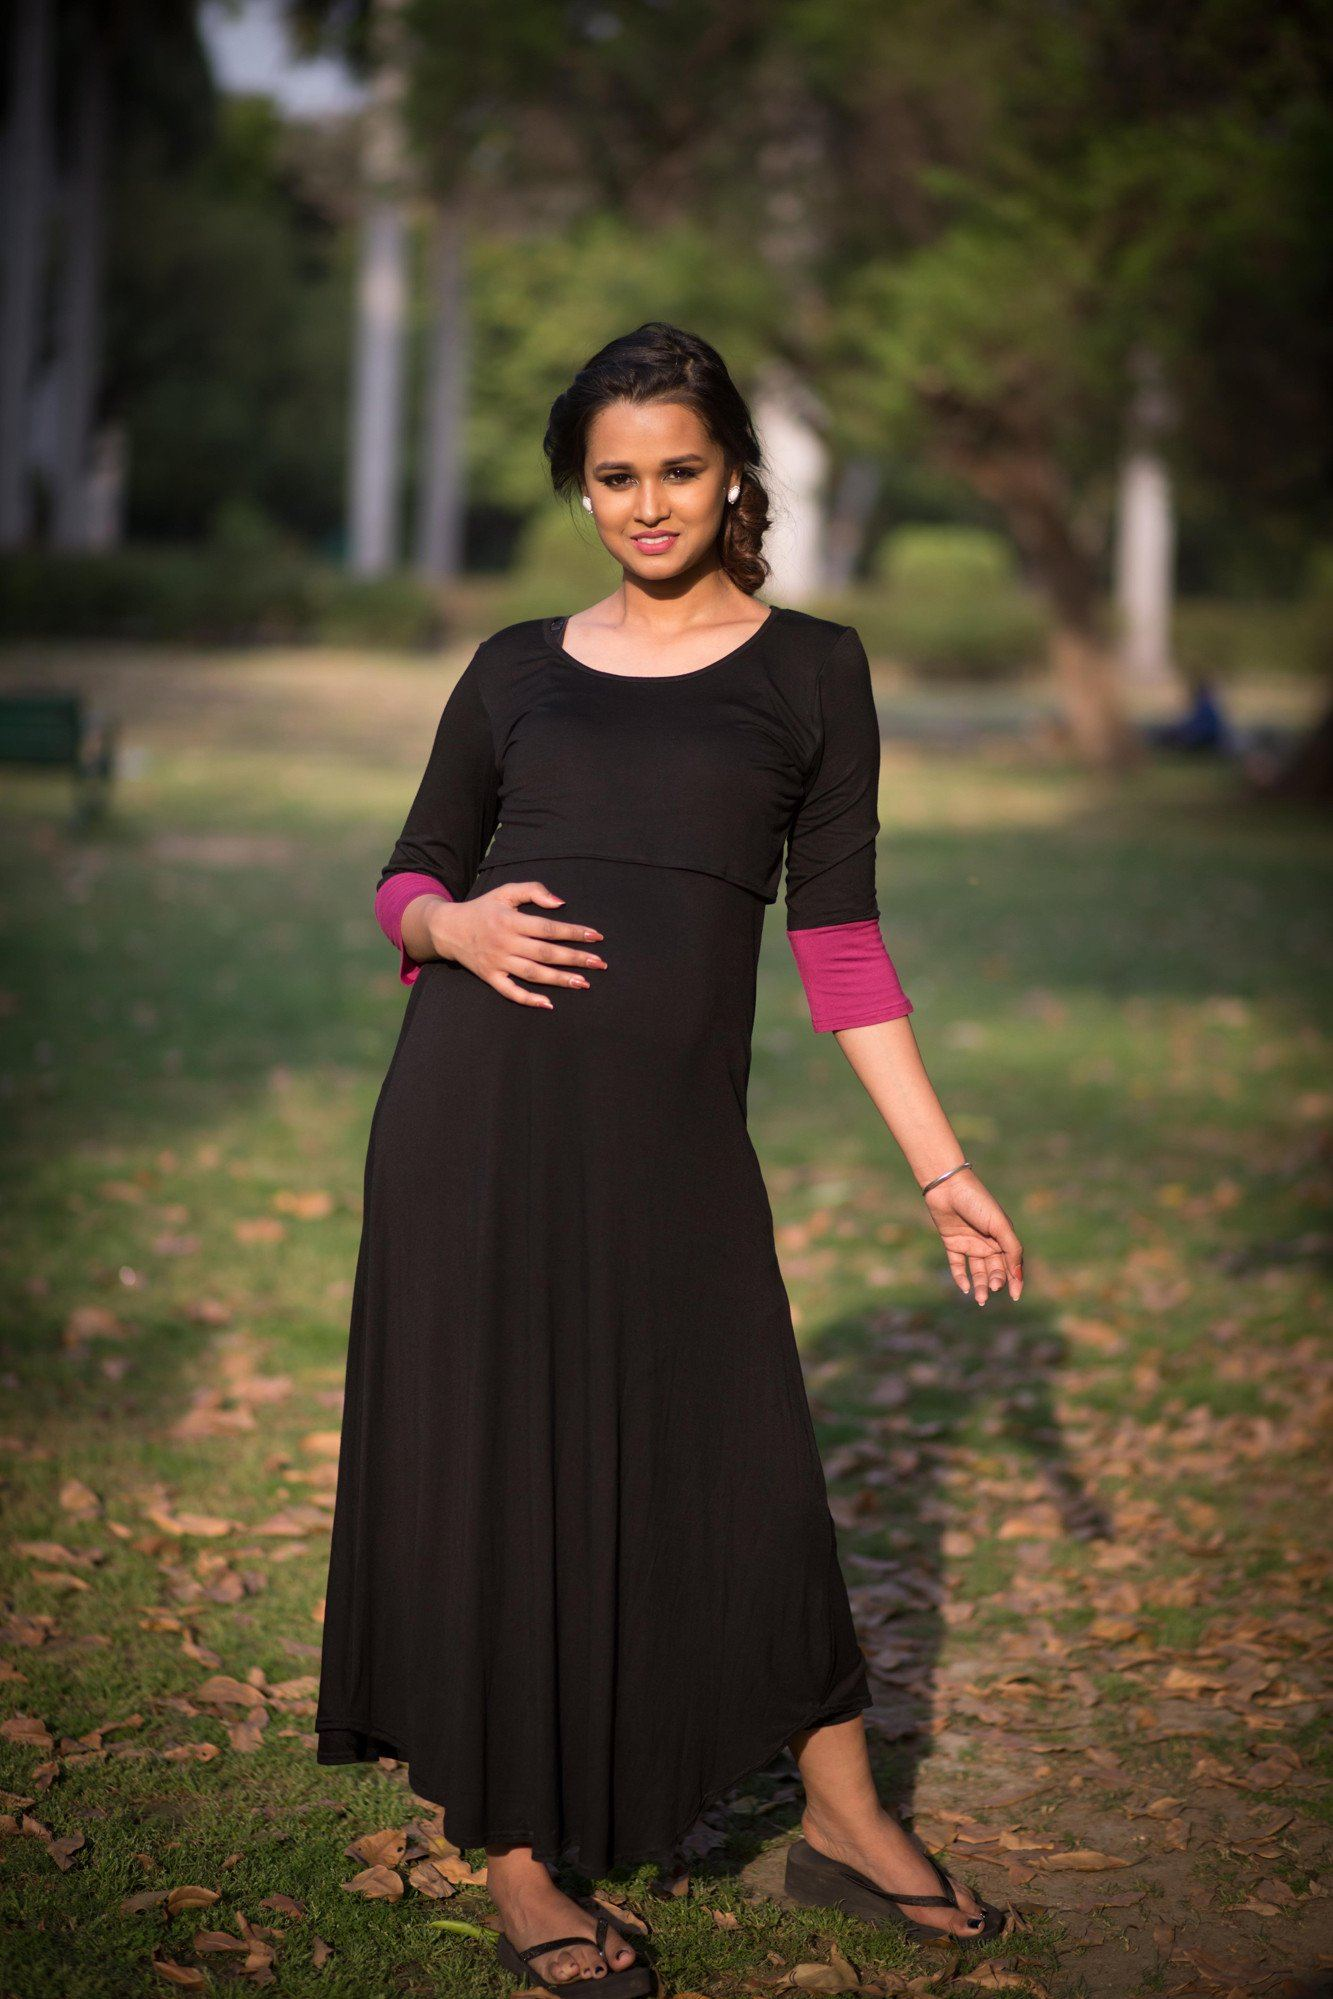 Buy online momzjoy maternity dresses pregnancy wear nursing clothes momzjoy maternity nursing dress maternity wear pregnancy clothes online india ombrellifo Gallery